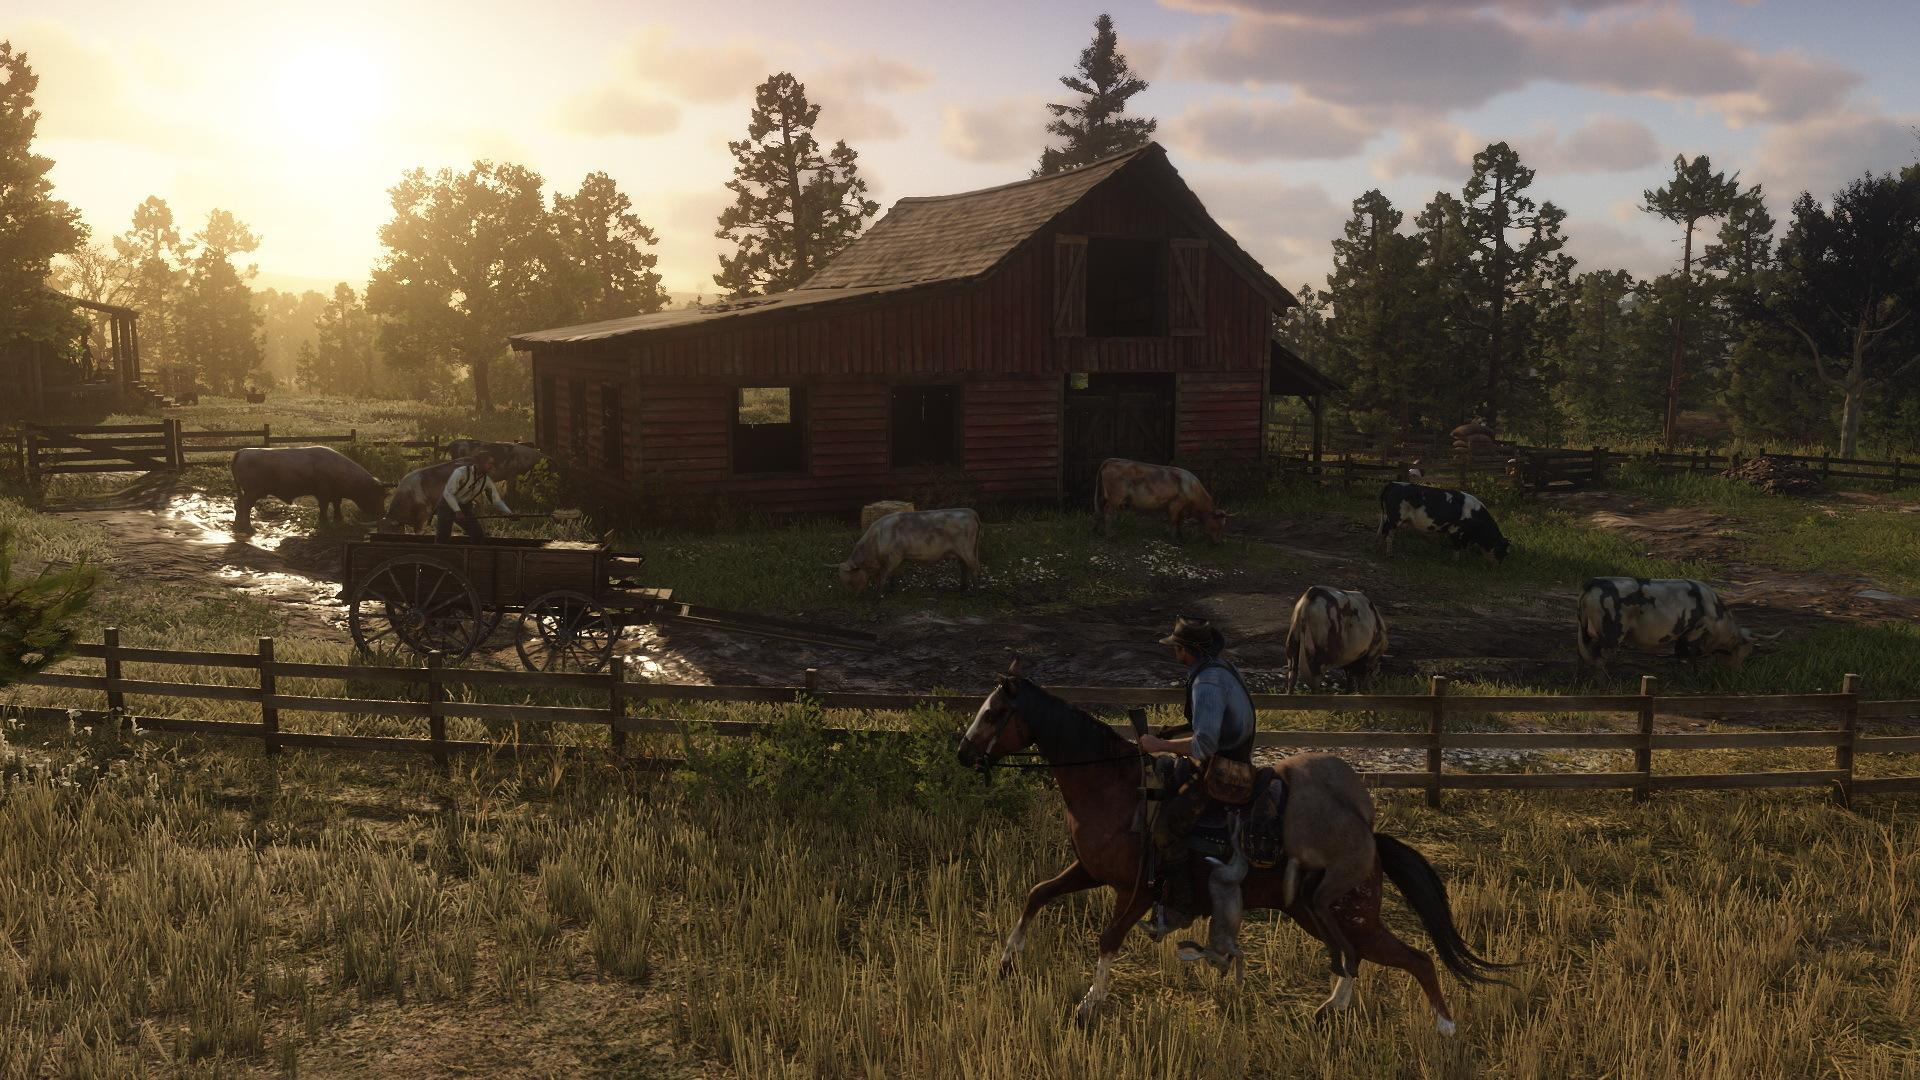 Don't Bet The Farm On Red Dead Redemption 2 - Take-Two